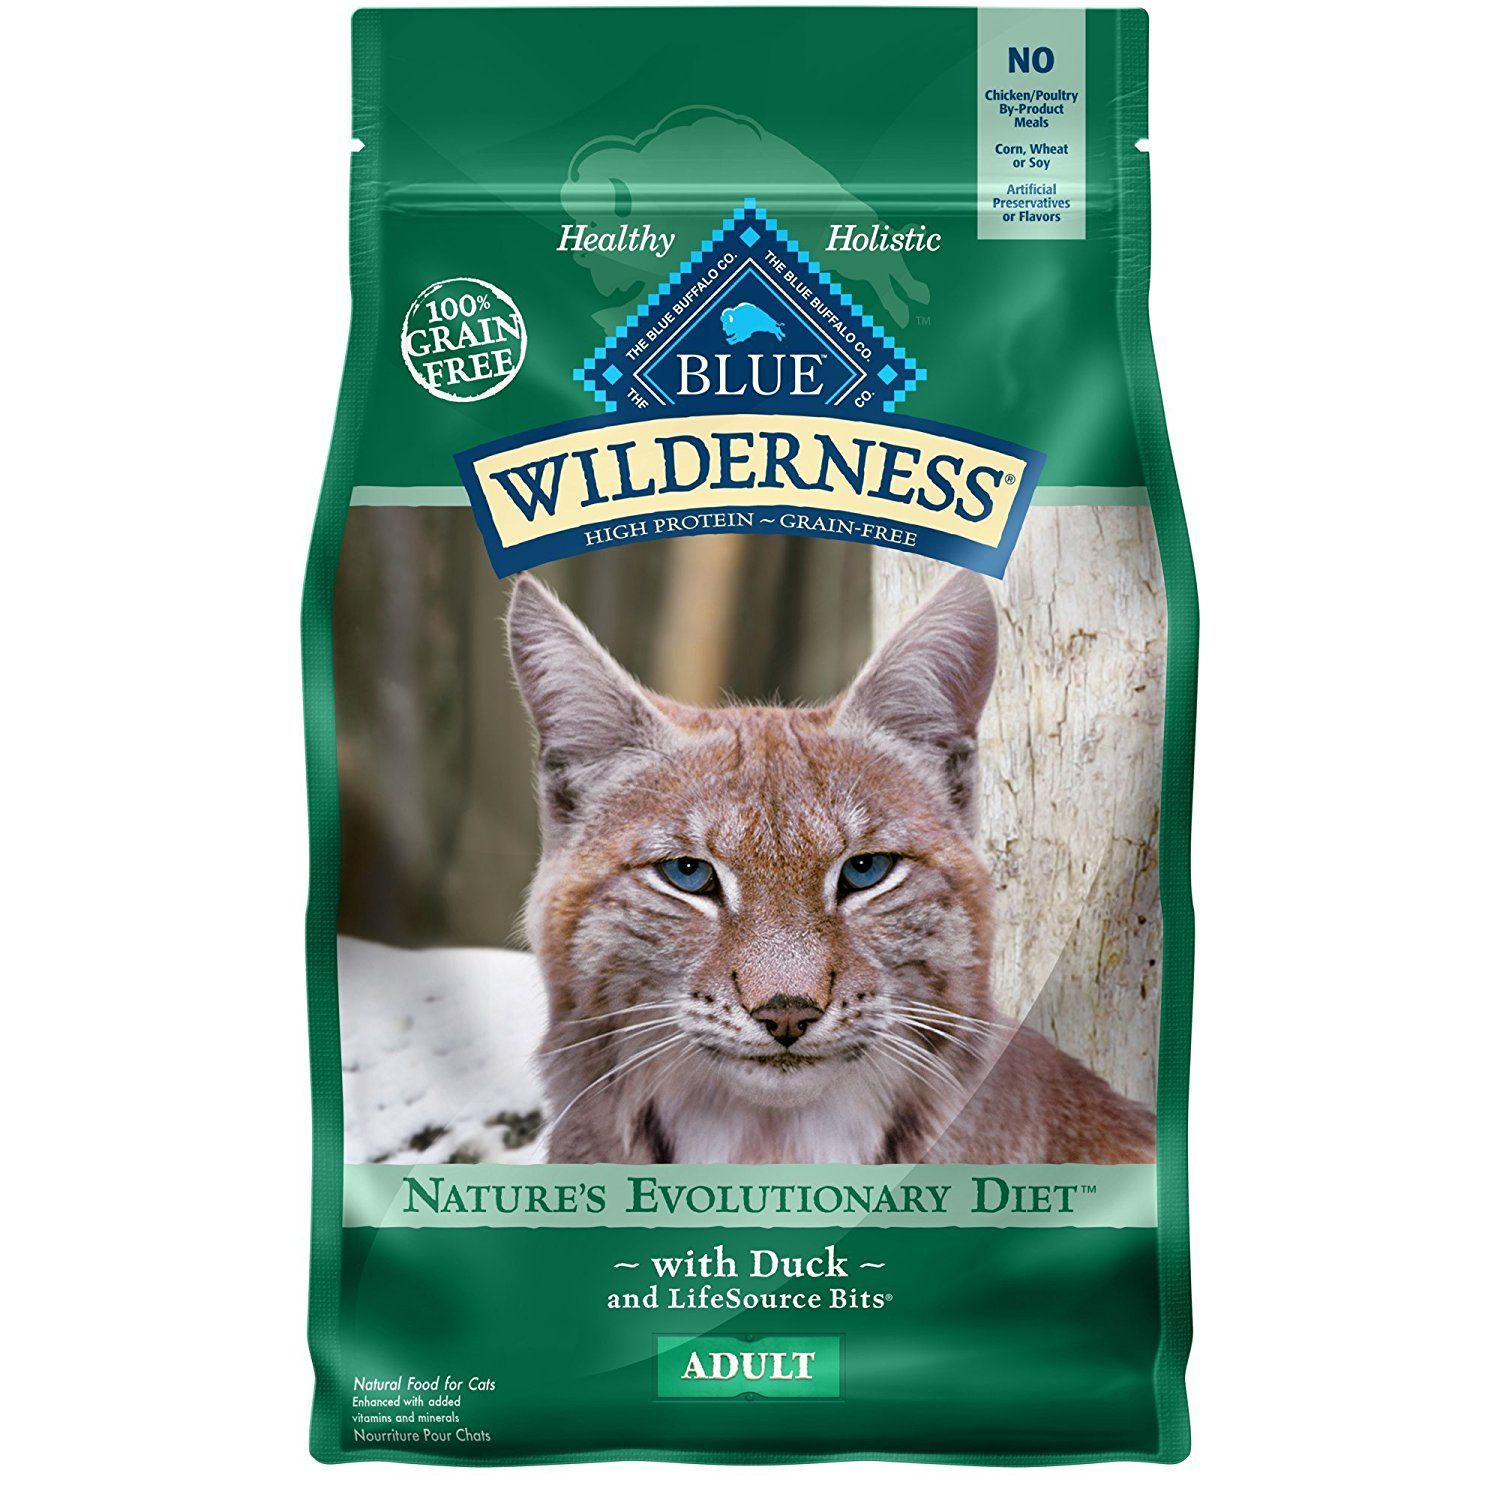 Blue buffalo wilderness chicken dry cat food check out